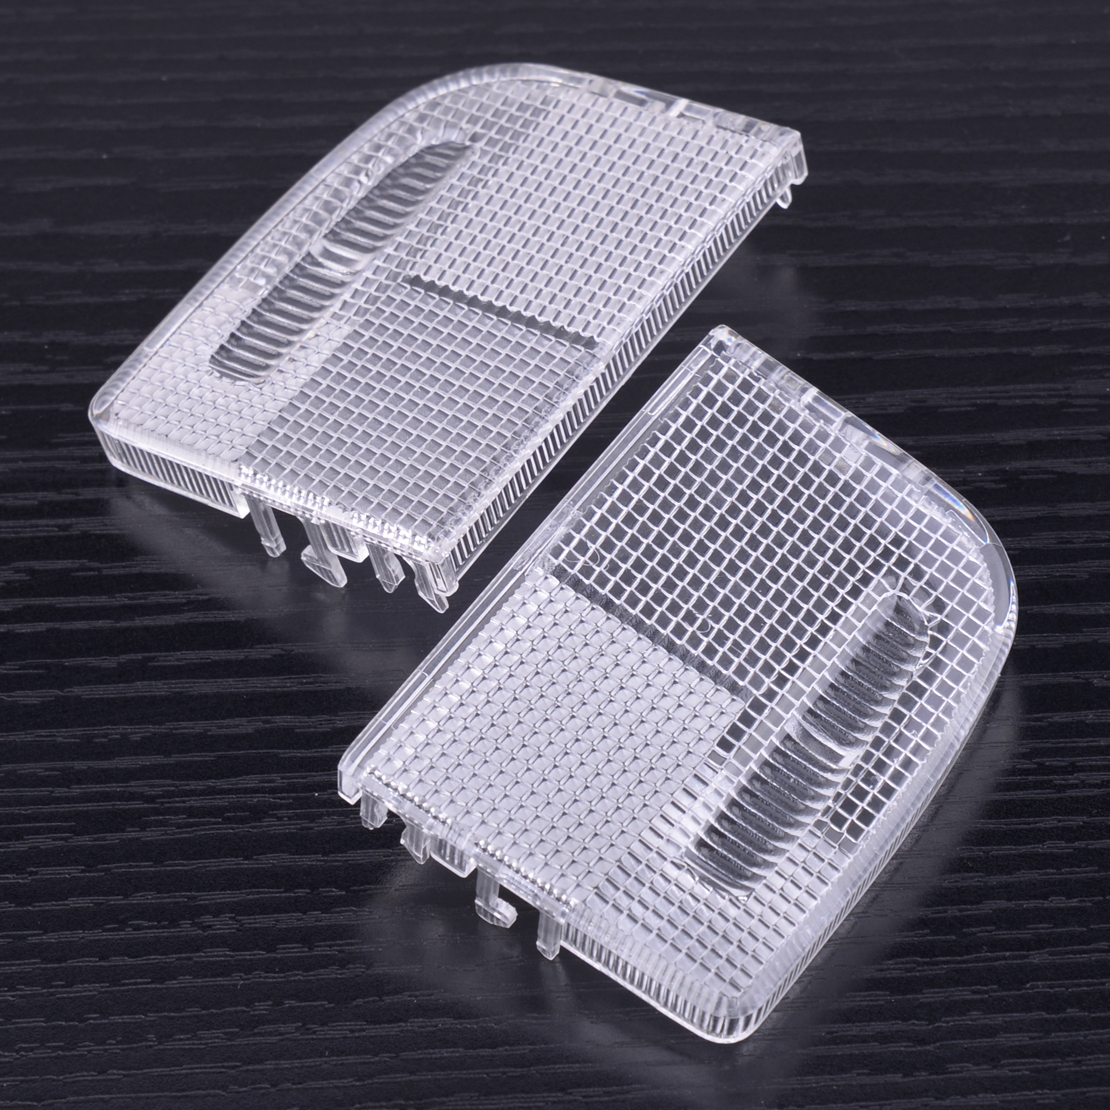 beler 2pcs Right Left Interior Roof Map Light Lens Reading Lamp 34401-SDA-A21 34402-SDA-A21 for TSX Accord Civic CRV Crosstour